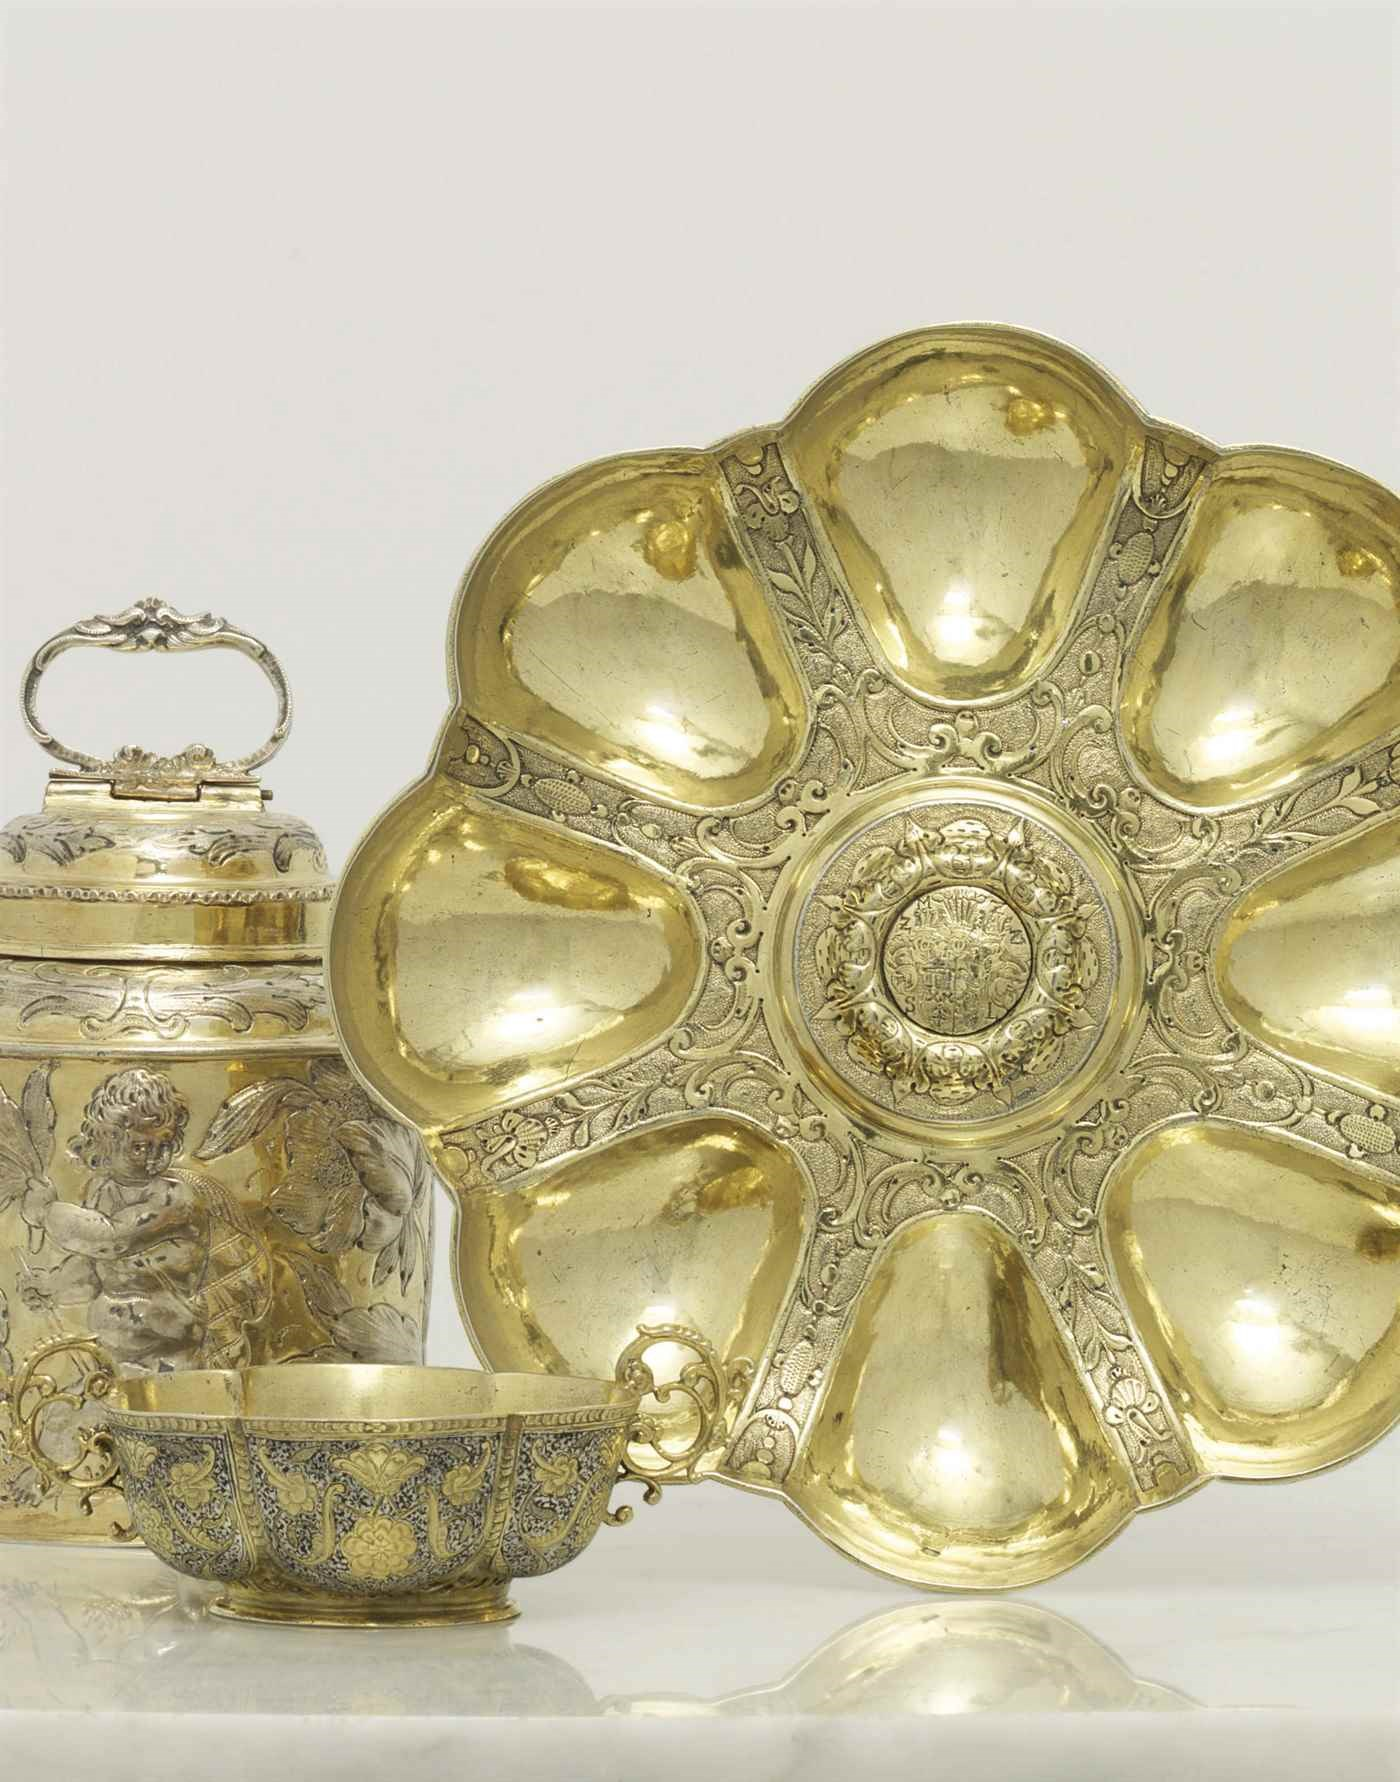 Silver & Gold Boxes auction at Christies